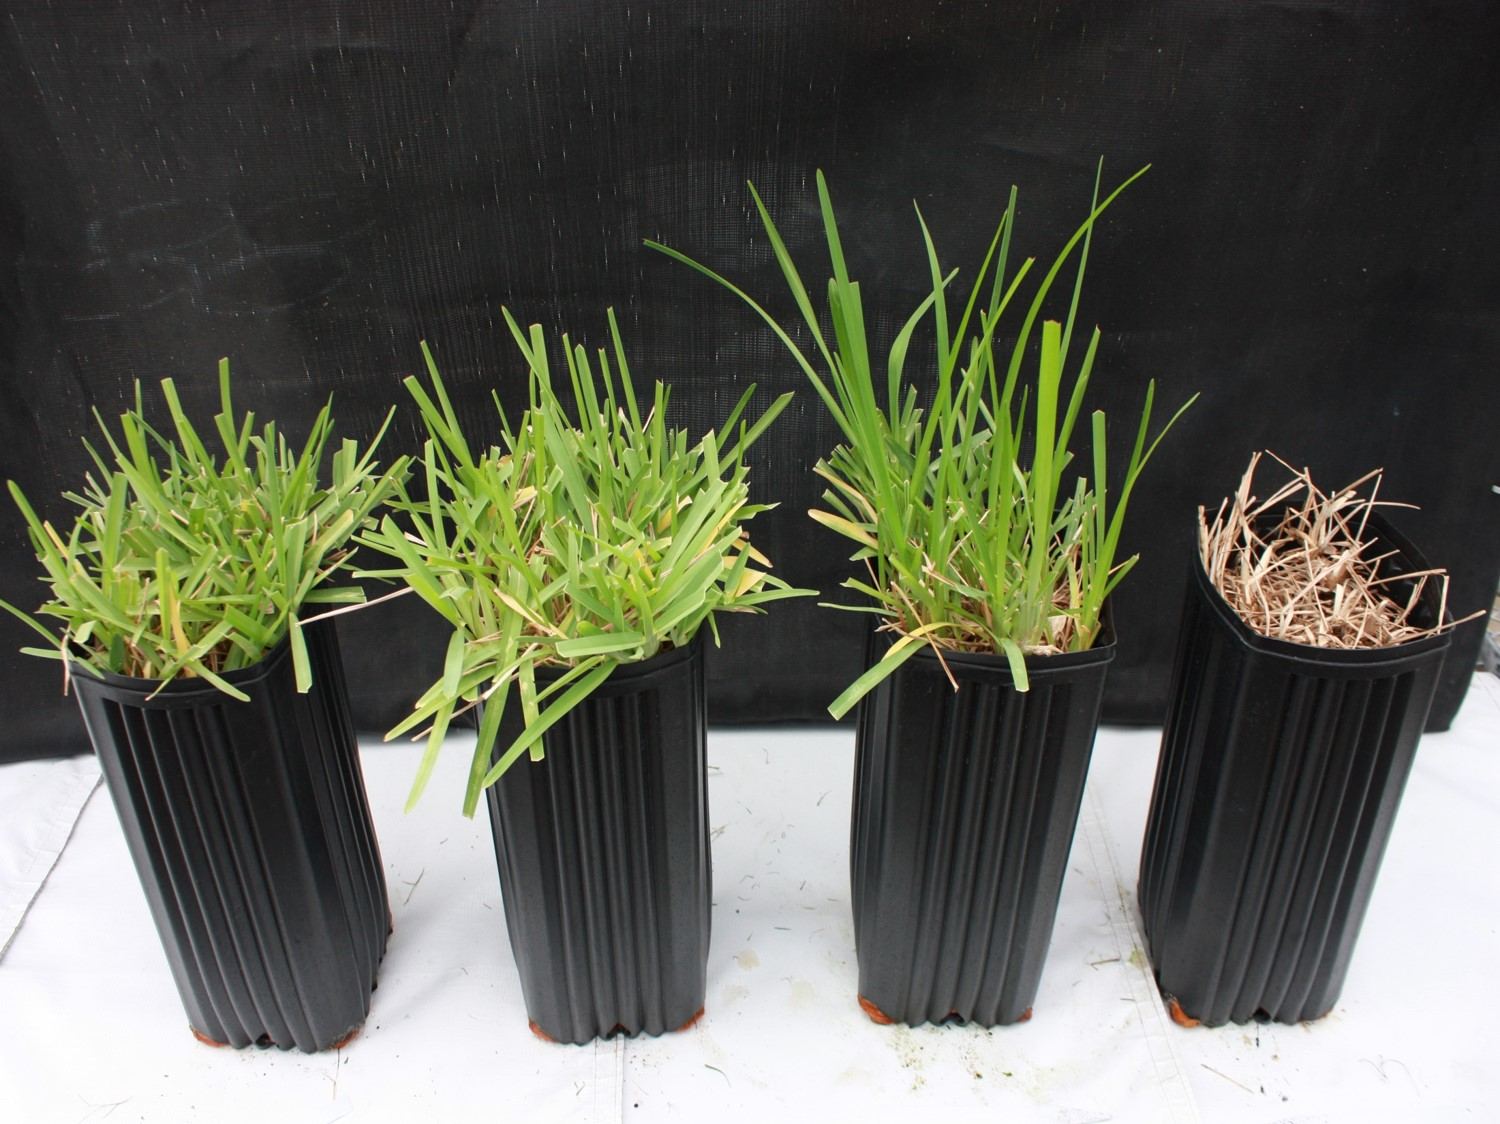 These four pots contain St. Augustinegrass, shown after a week of growth under 0, 30, 60, and 90% shade.